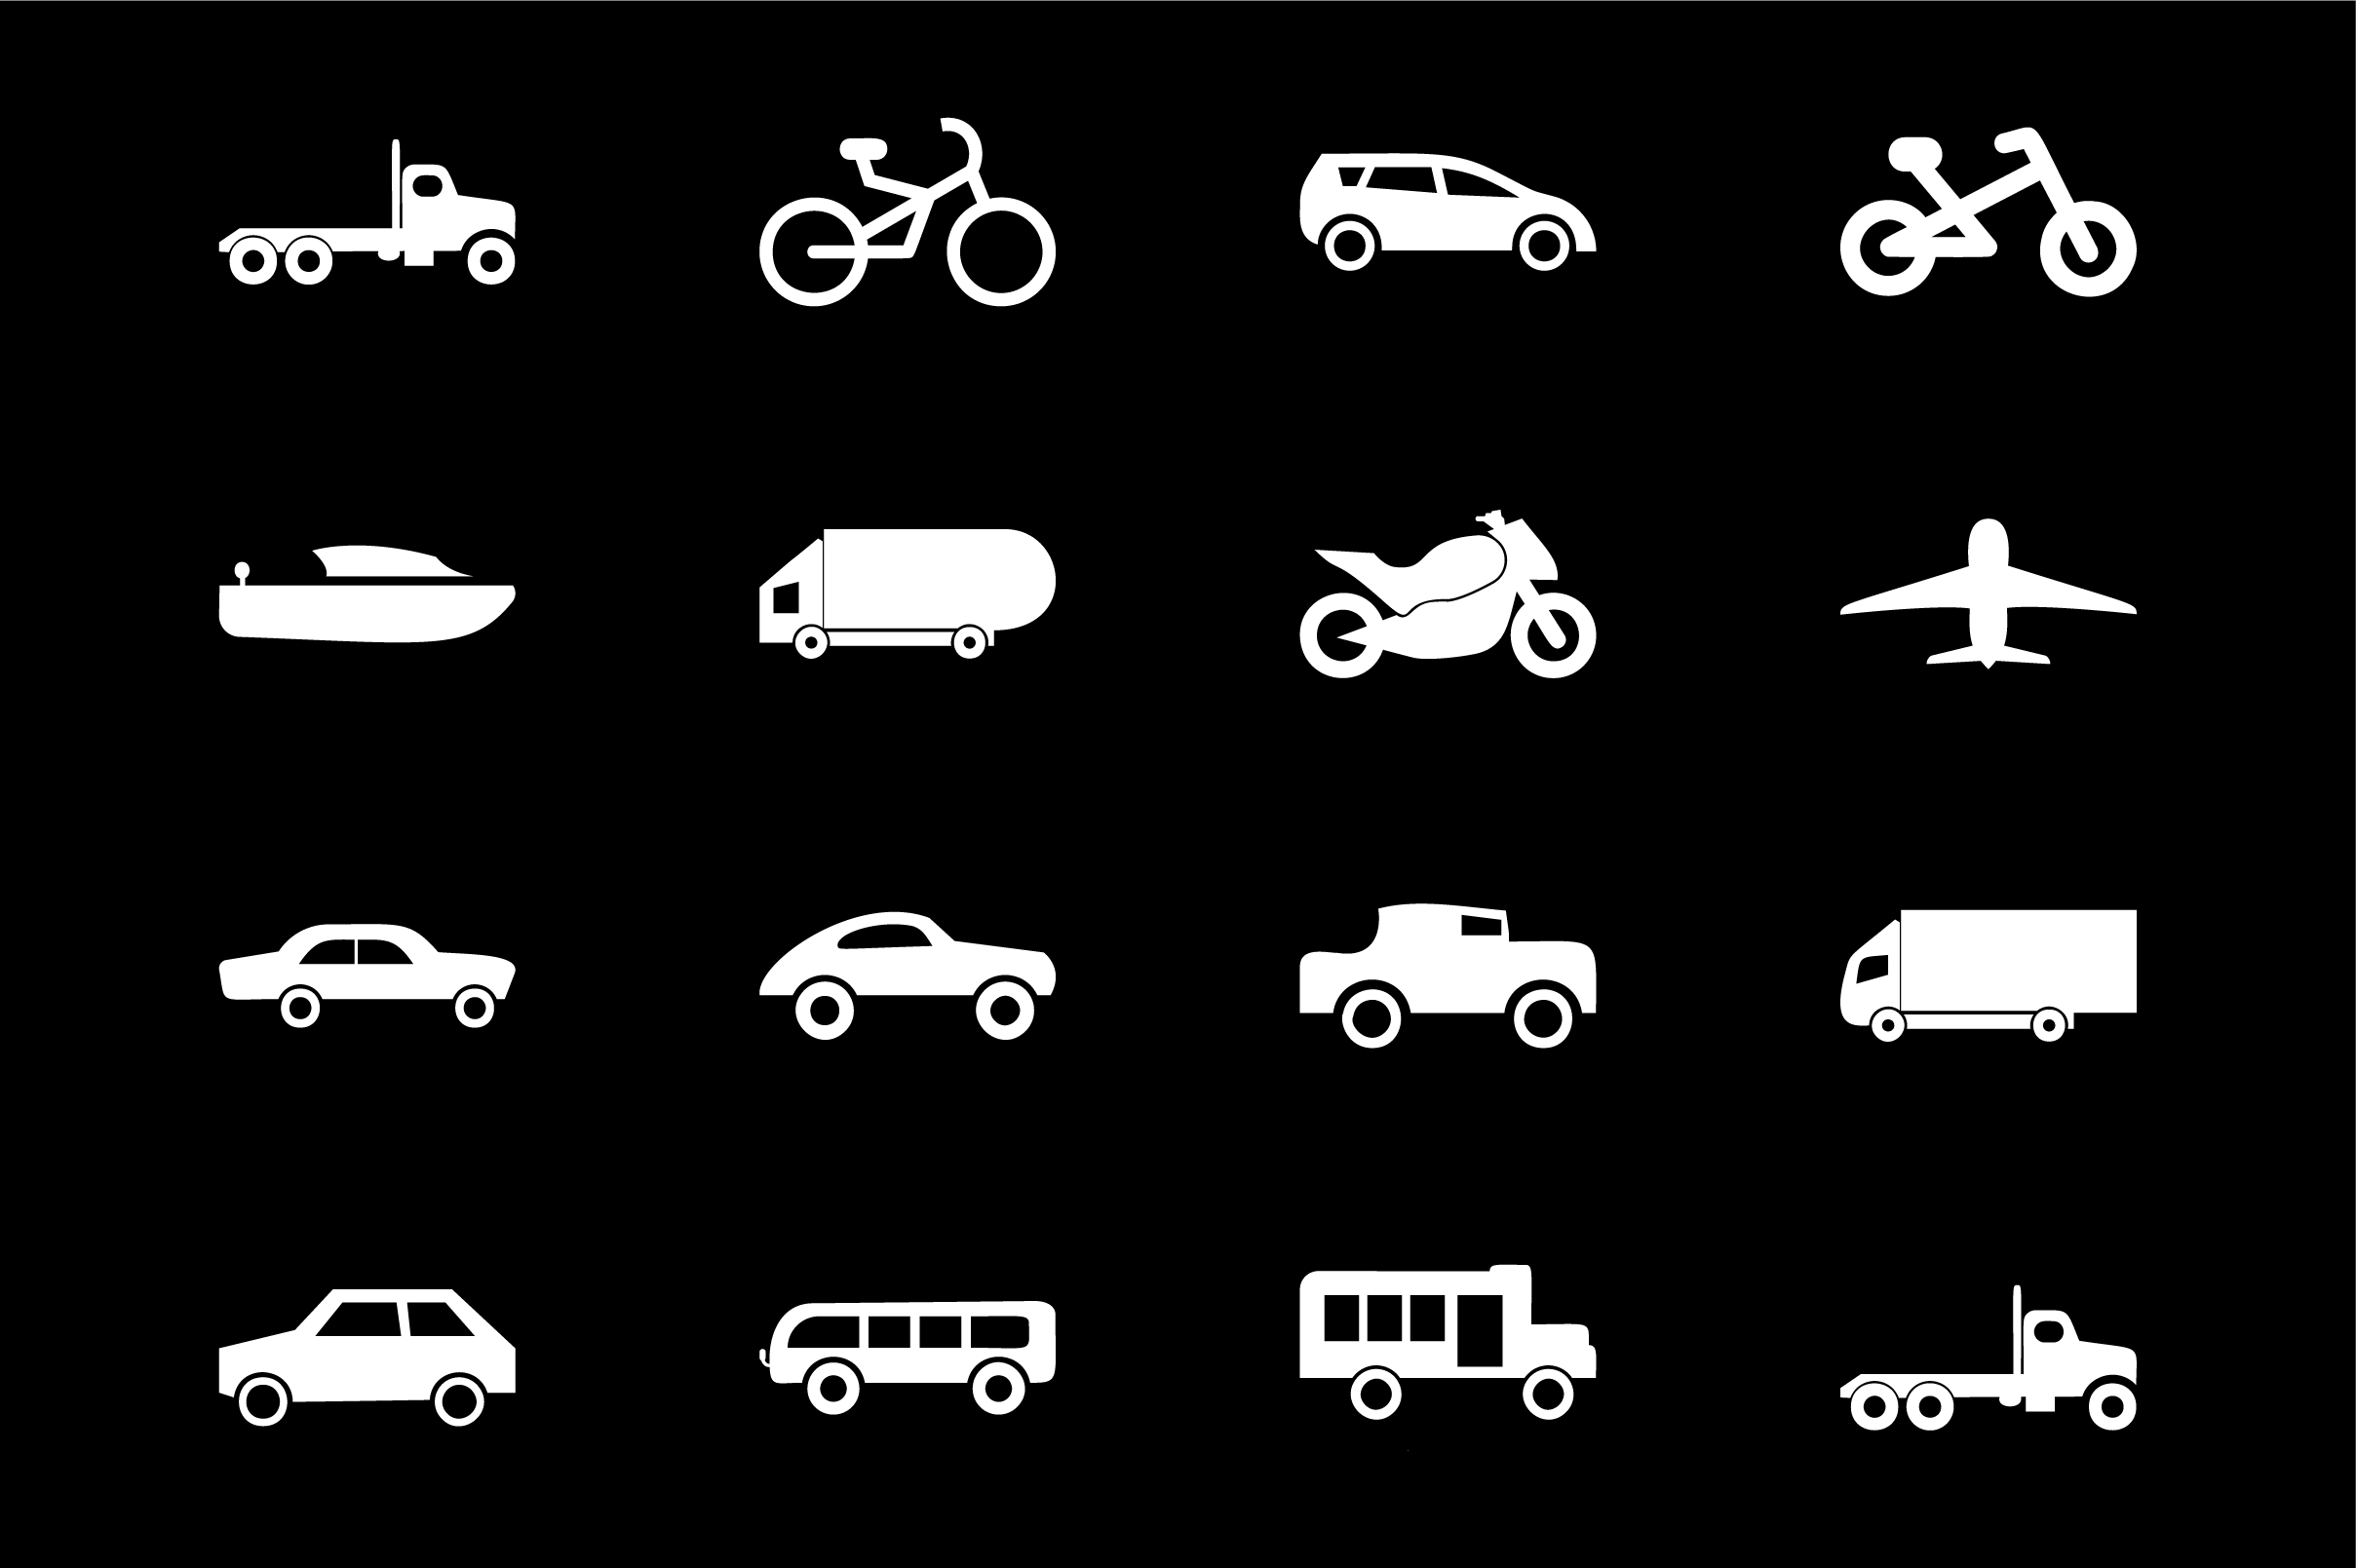 Download Free Vehicle Icon Set Vector Graphic By Riduwan Molla Creative Fabrica for Cricut Explore, Silhouette and other cutting machines.